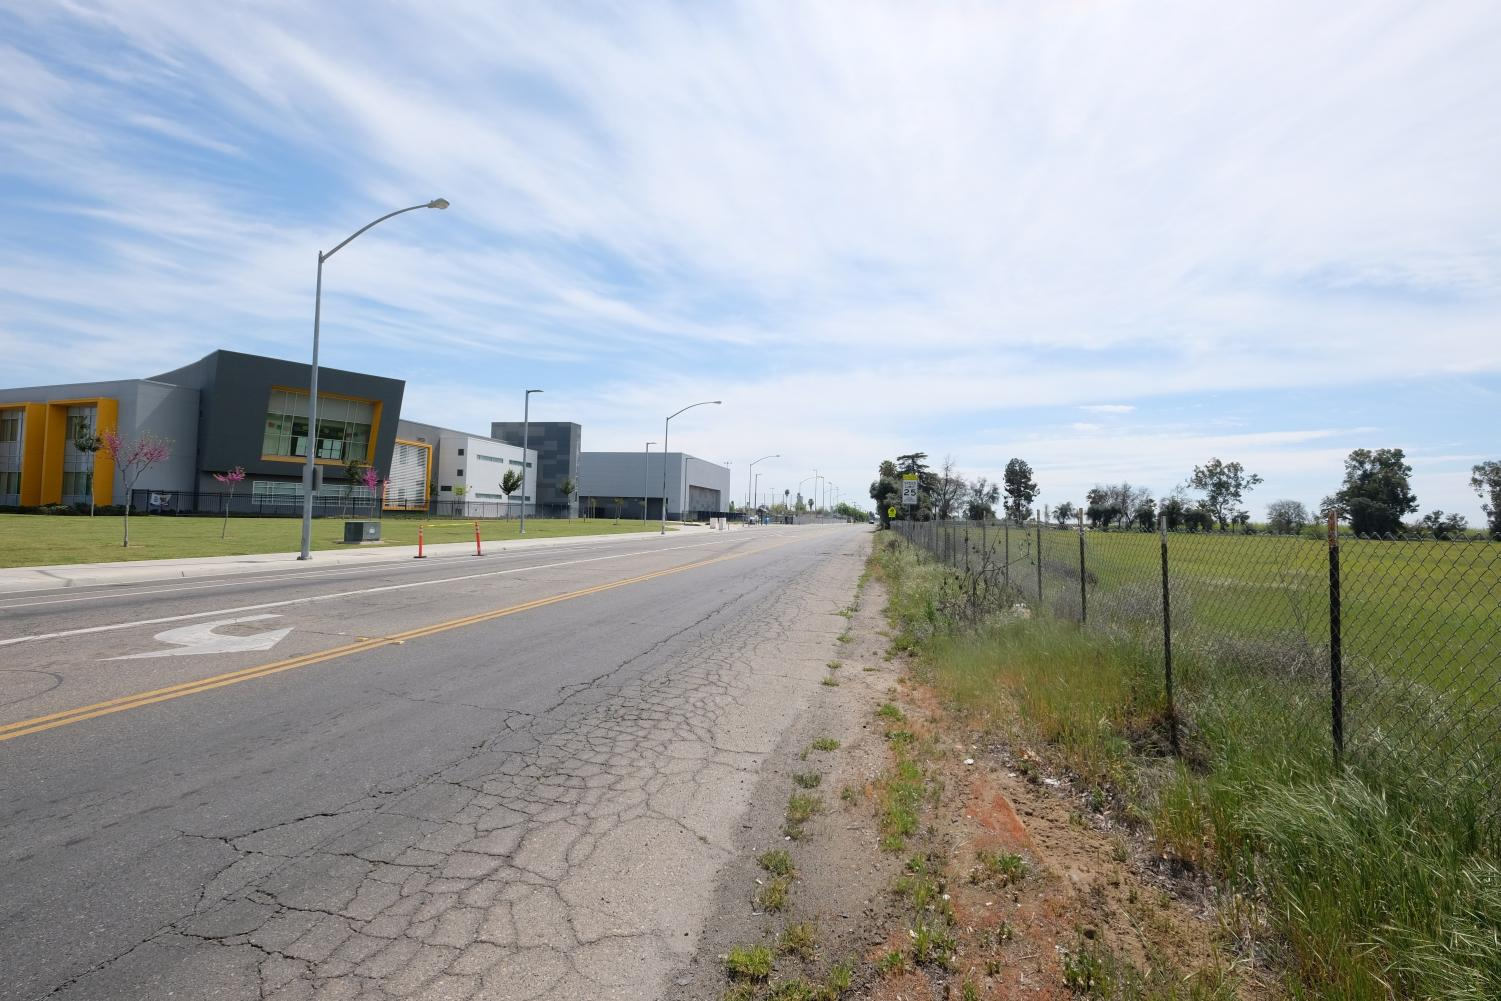 The State Center Community College District approved the purchase of 26 acres of land across from Rutherford B. Gaston Middle School in Fresno, Calif. where the west Fresno campus is slated to be built.